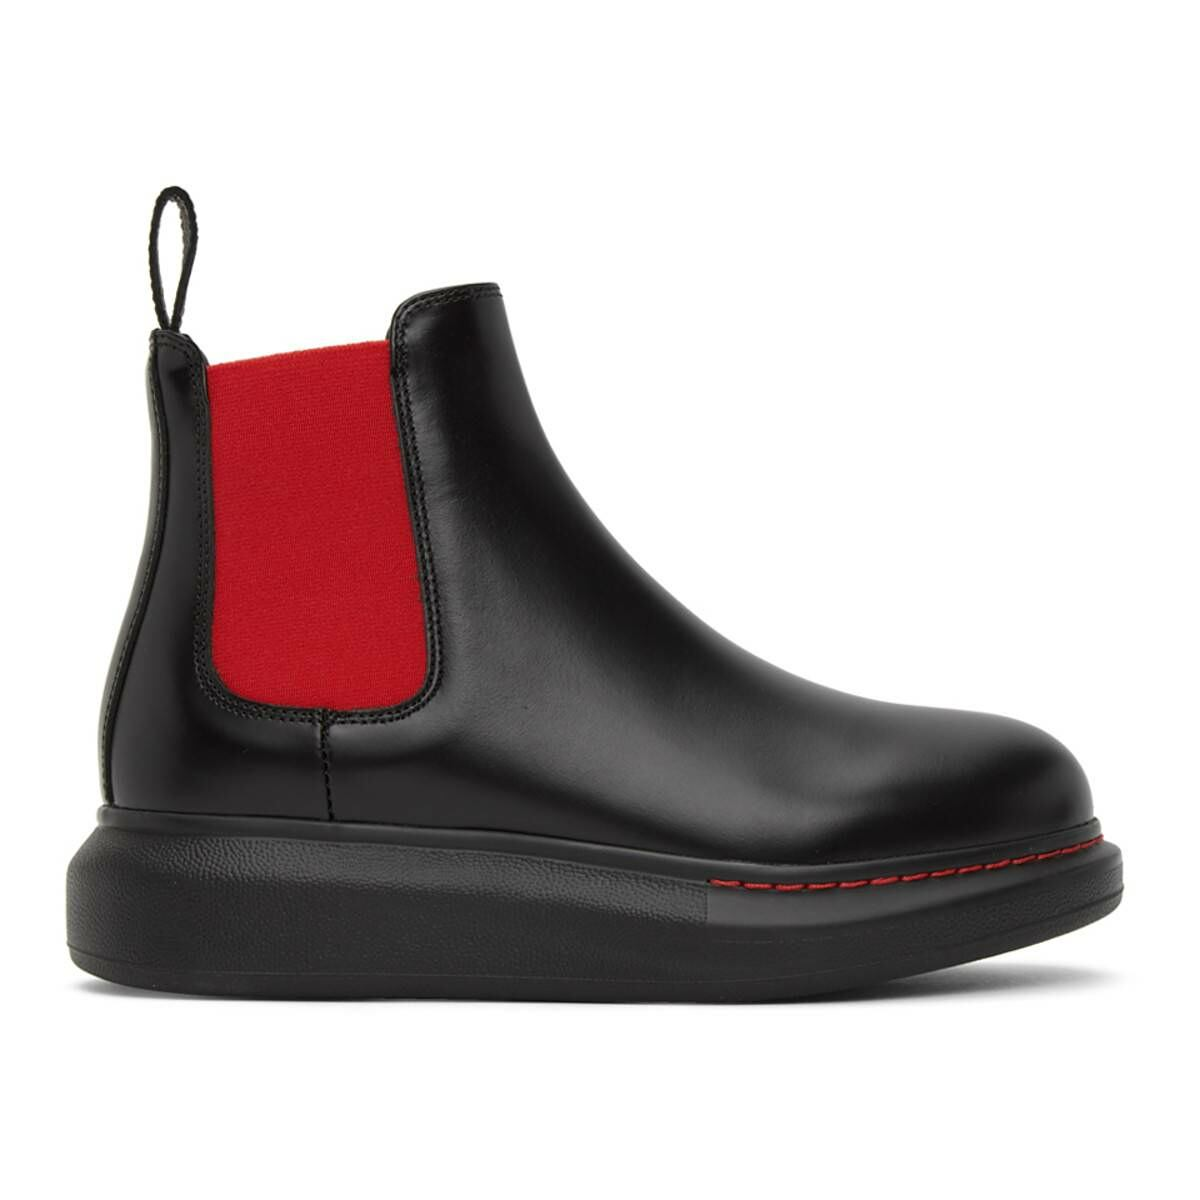 Alexander McQueen Black and Red Contrast Sole Hybrid Chelsea Boots Ssense USA WOMEN Women SHOES Womens ANKLE BOOTS